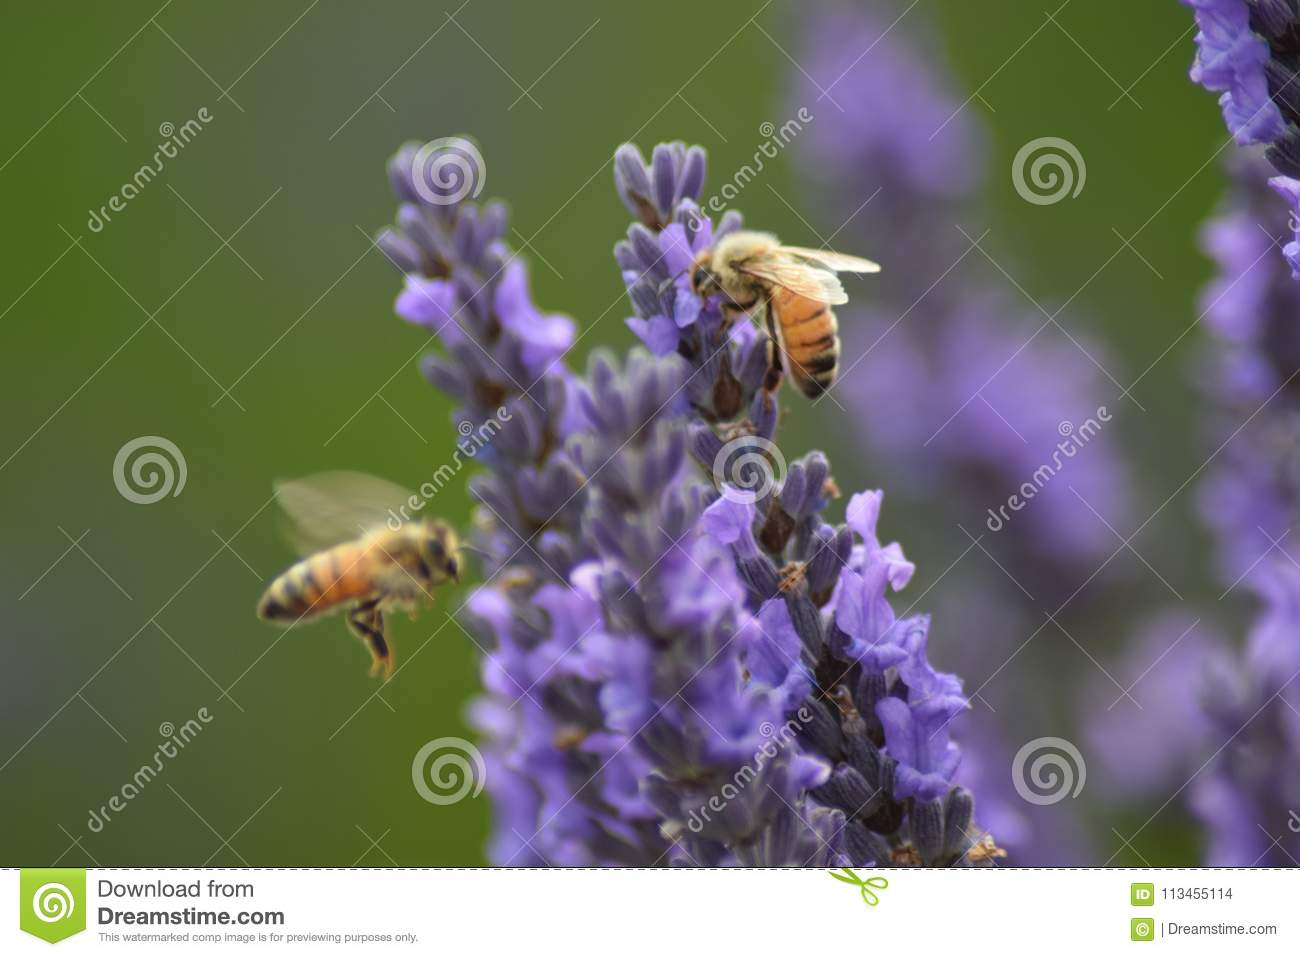 Bees and lavender plant